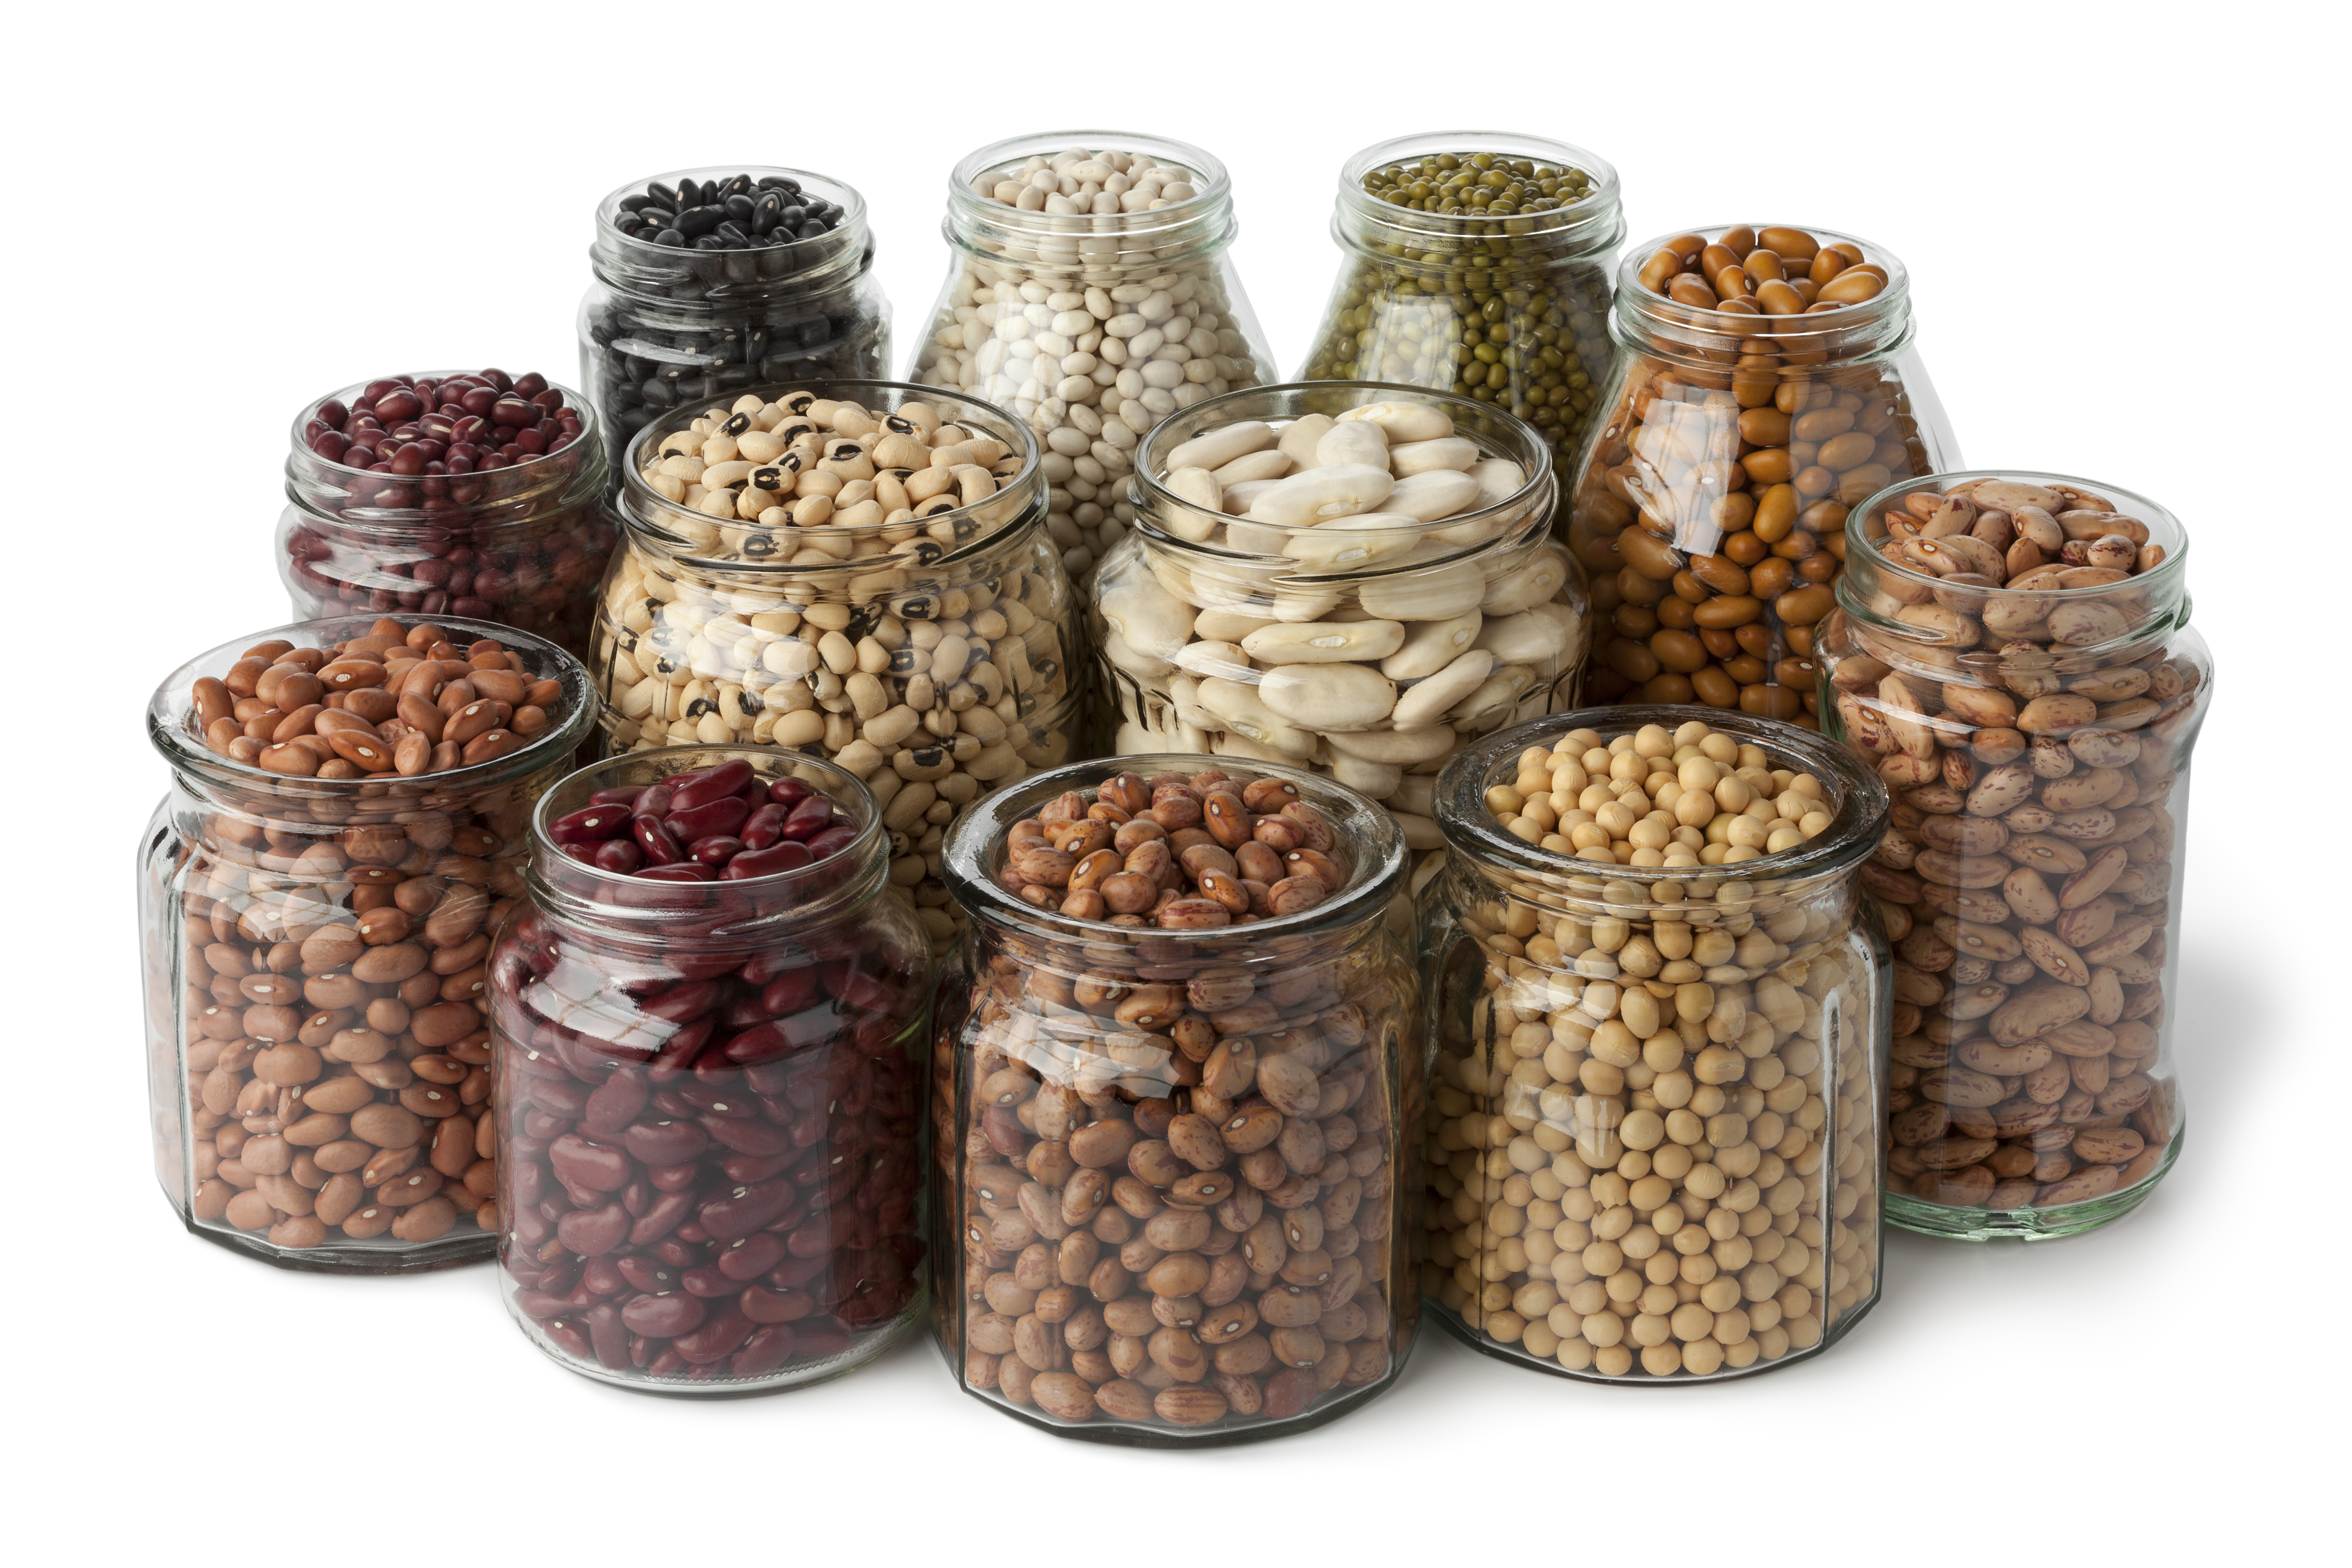 Glass pots with dried beans